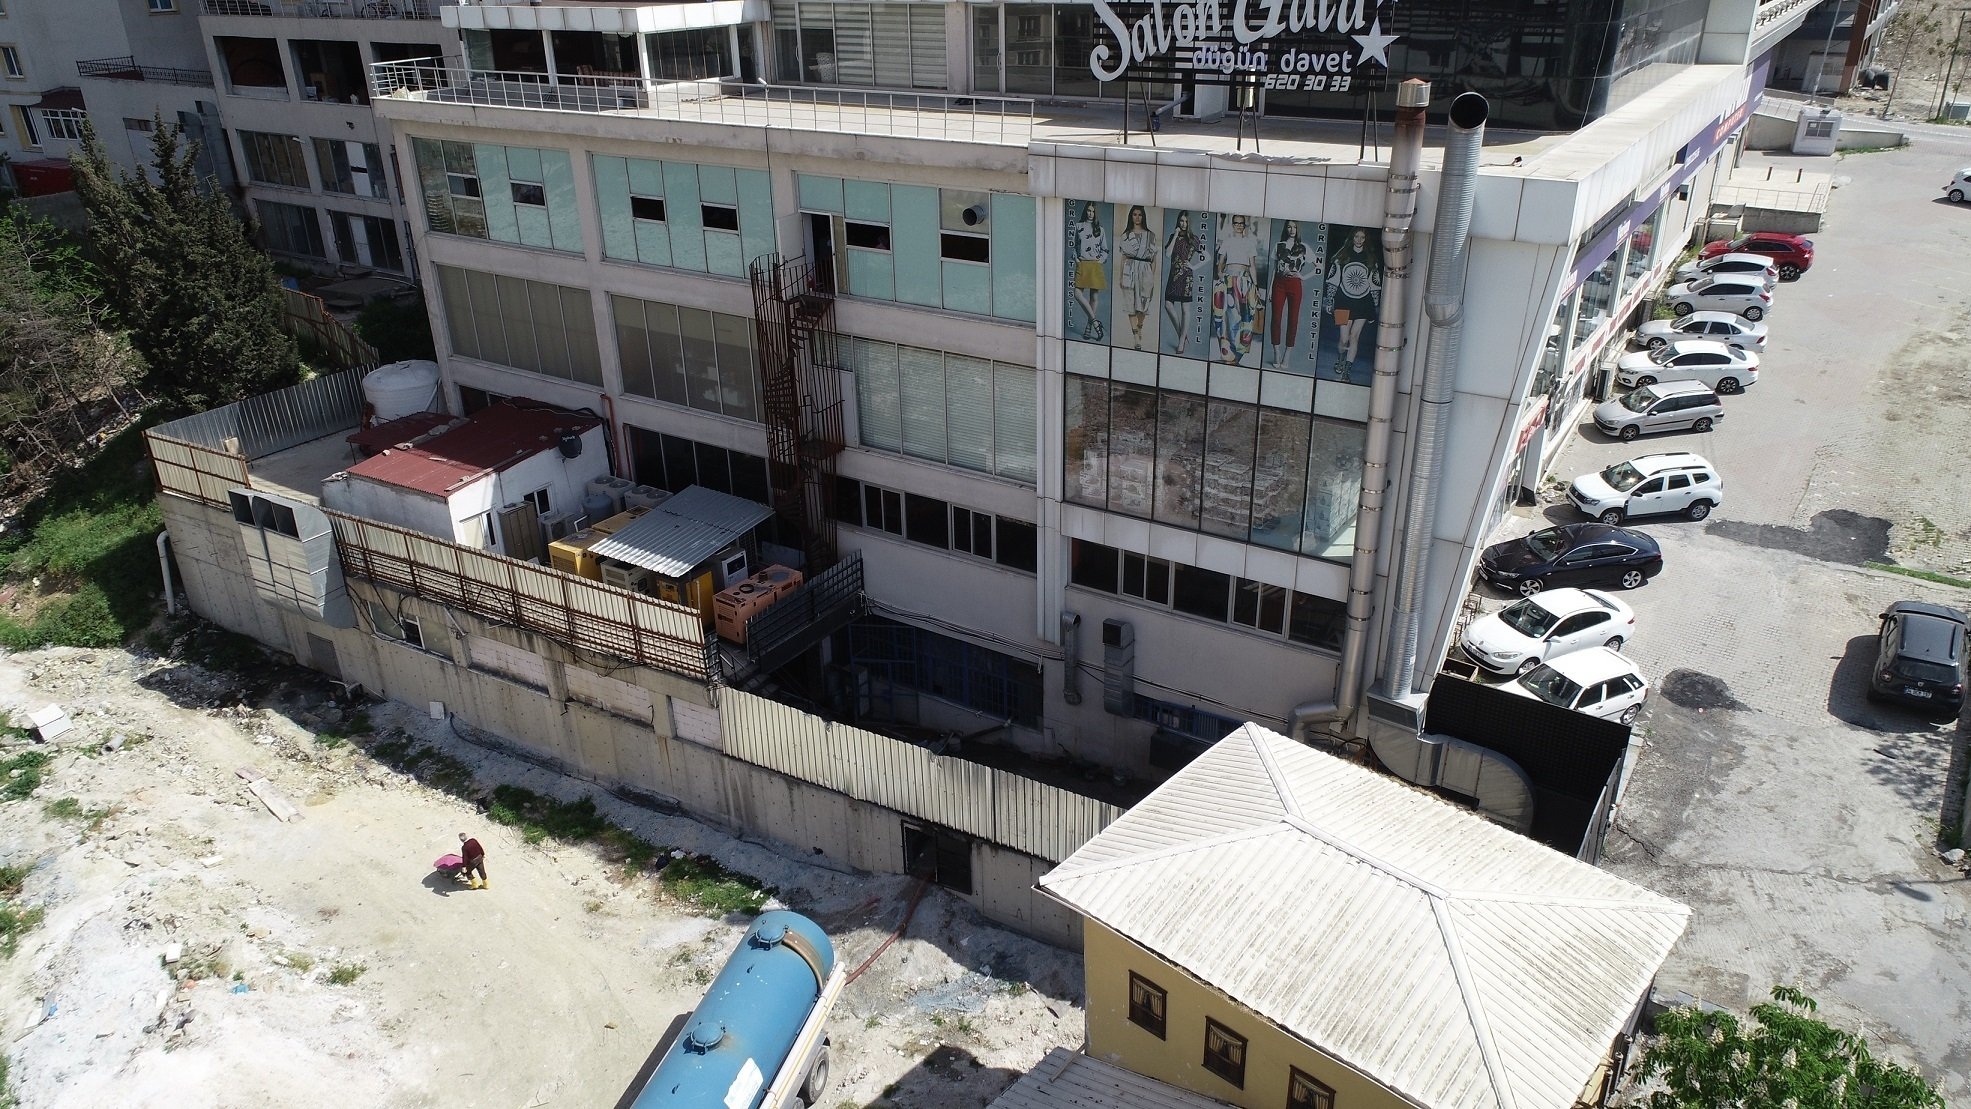 The textile washing facility responsible for causing the pollution in the stream in Istanbul's Esenyurt district, Turkey, May 5, 2021. (DHA Photo)